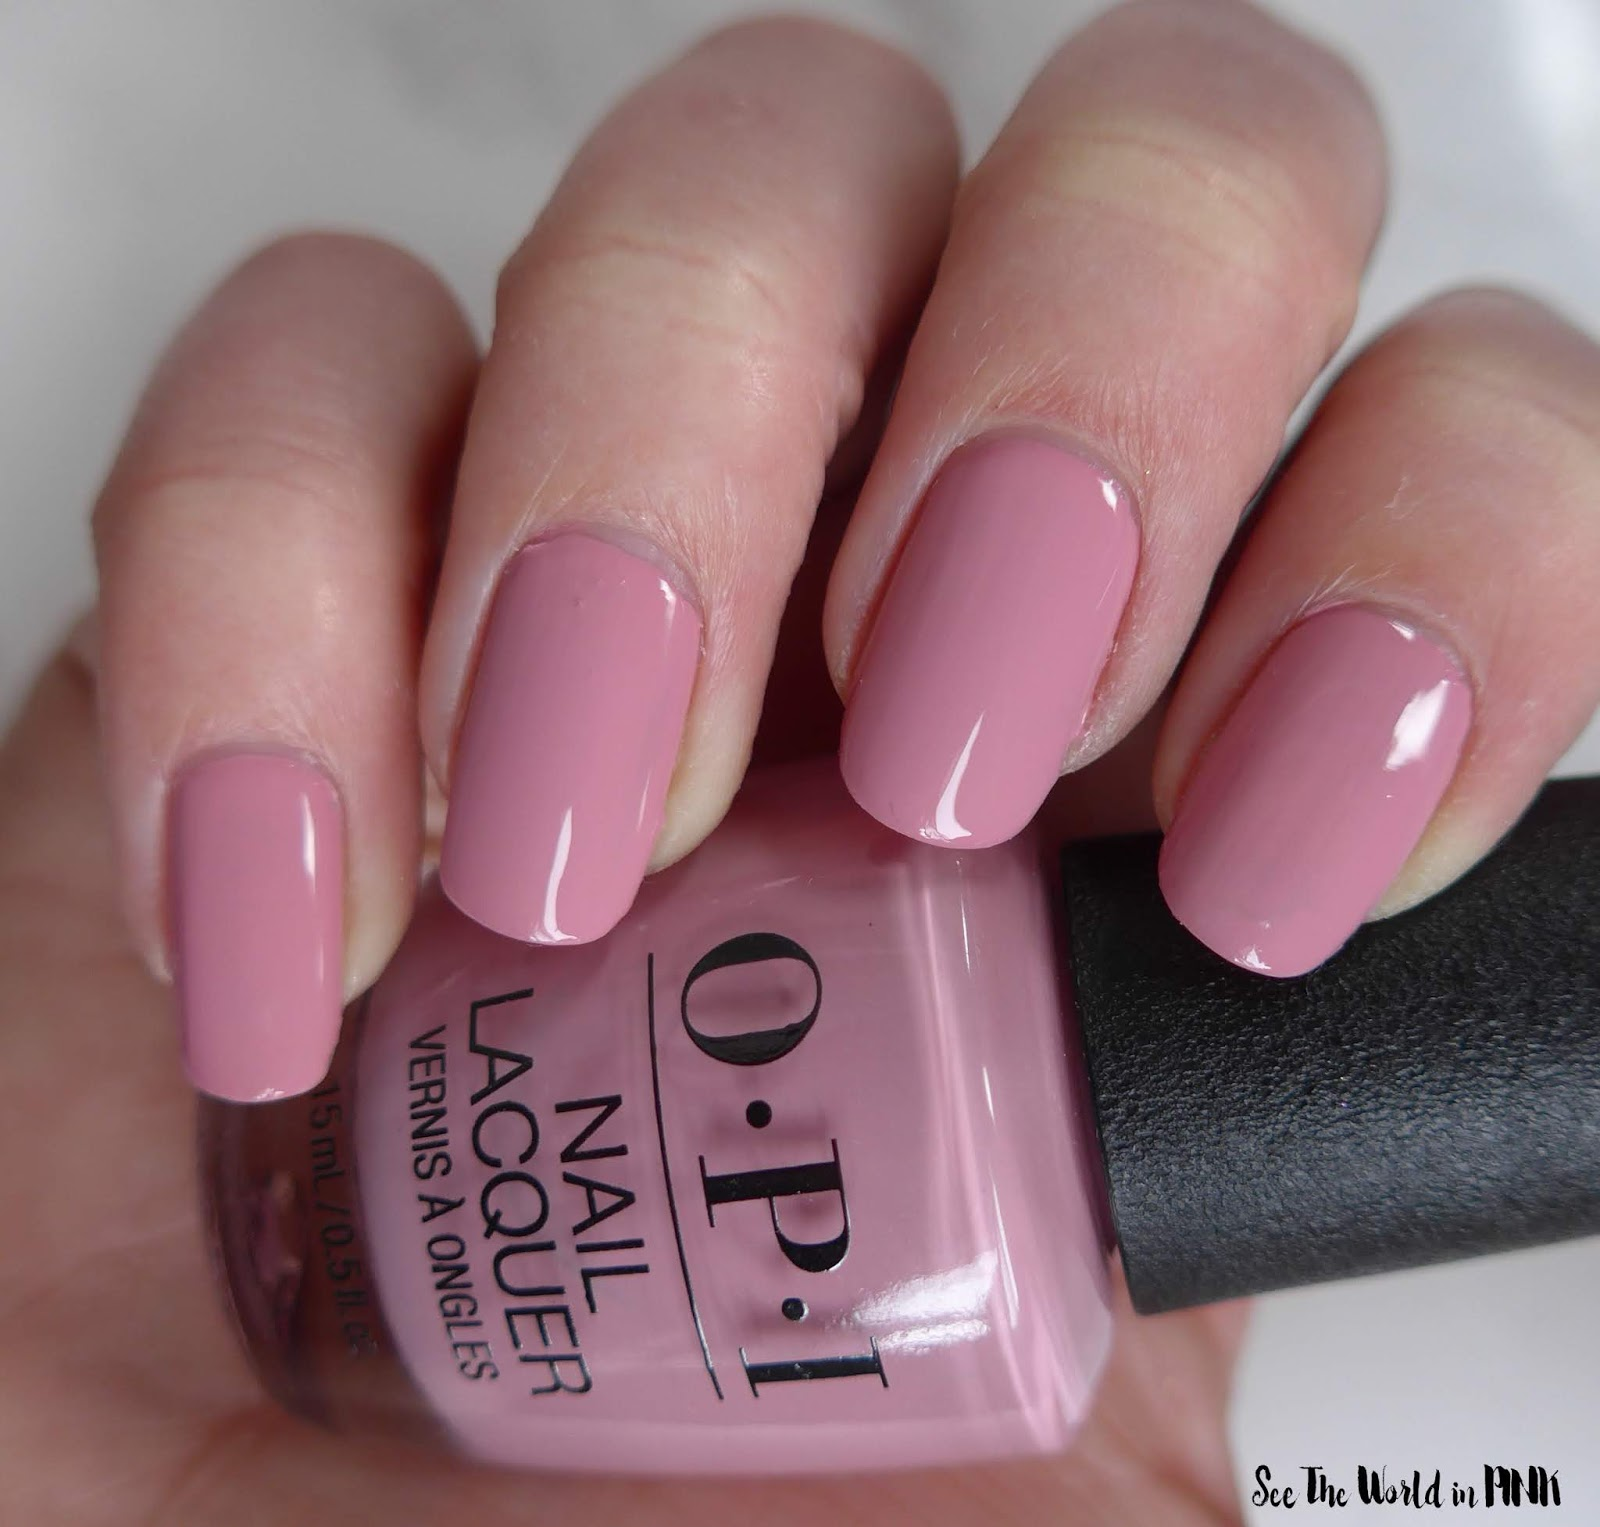 Manicure Monday - OPI Tokyo Collection for Spring and Summer 2019 Rice Rice Baby